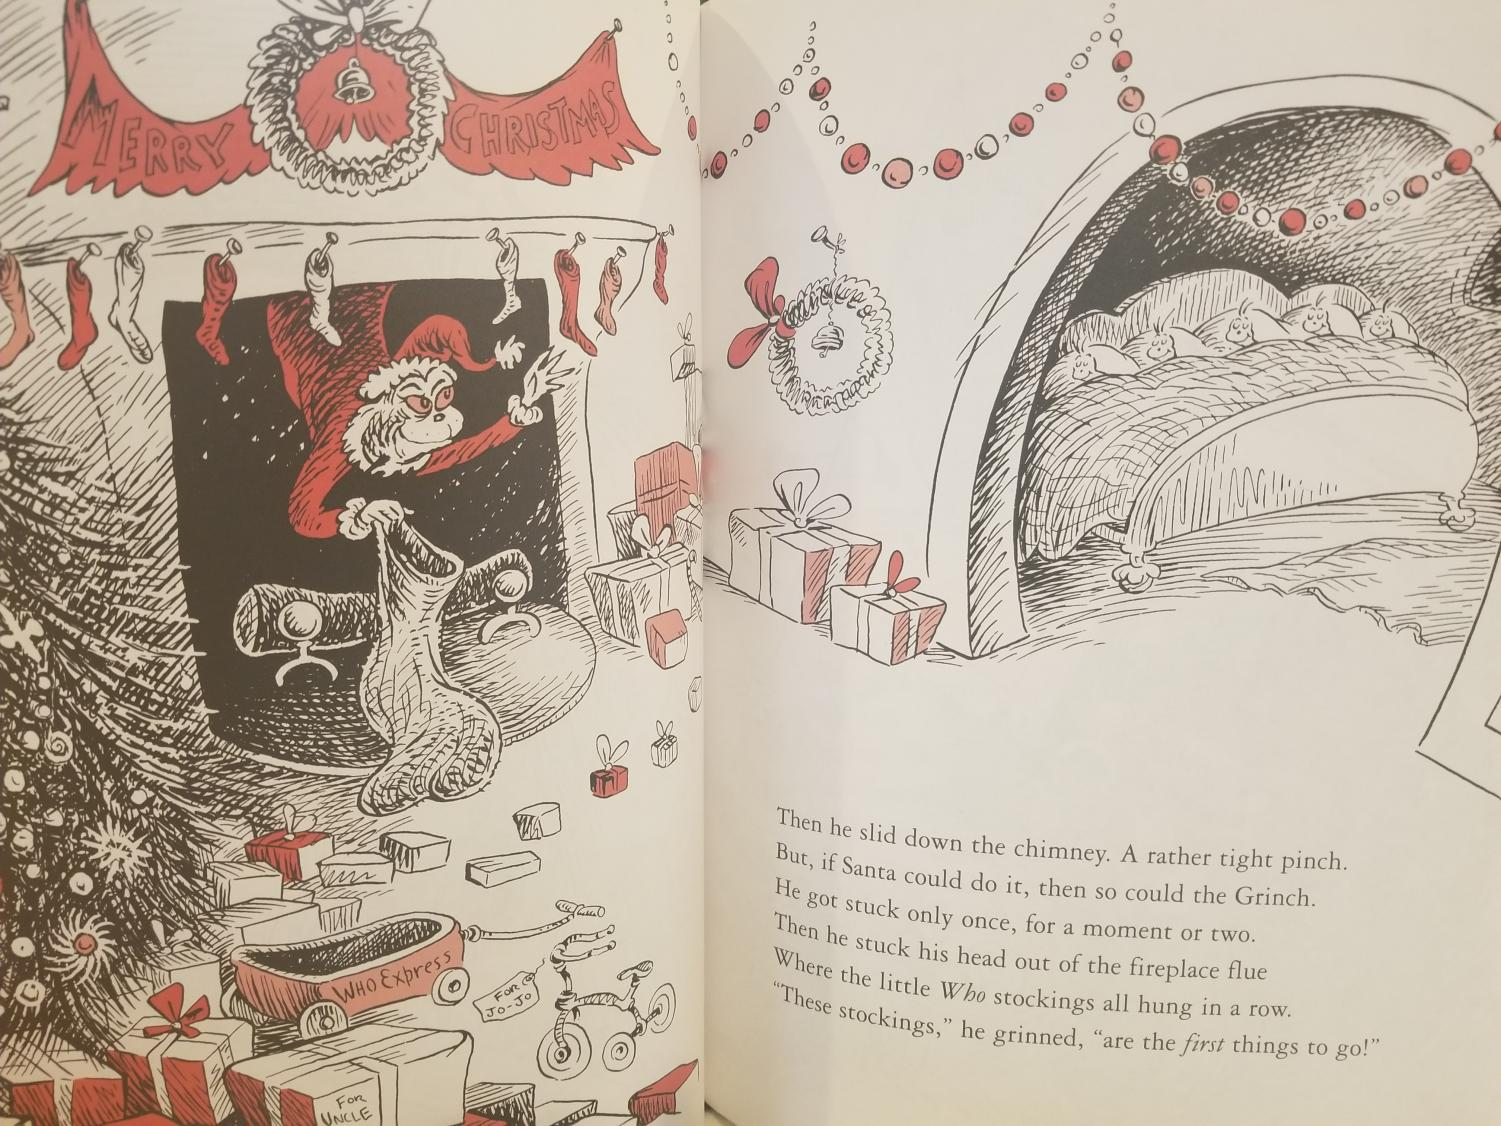 How the Grinch Stole Christmas by Dr. Seuss has been a holiday favorite since it was published in 1957. The Grinch, who first hated Christmas, learns to love the holiday through the spirit of the people living in Who-ville.